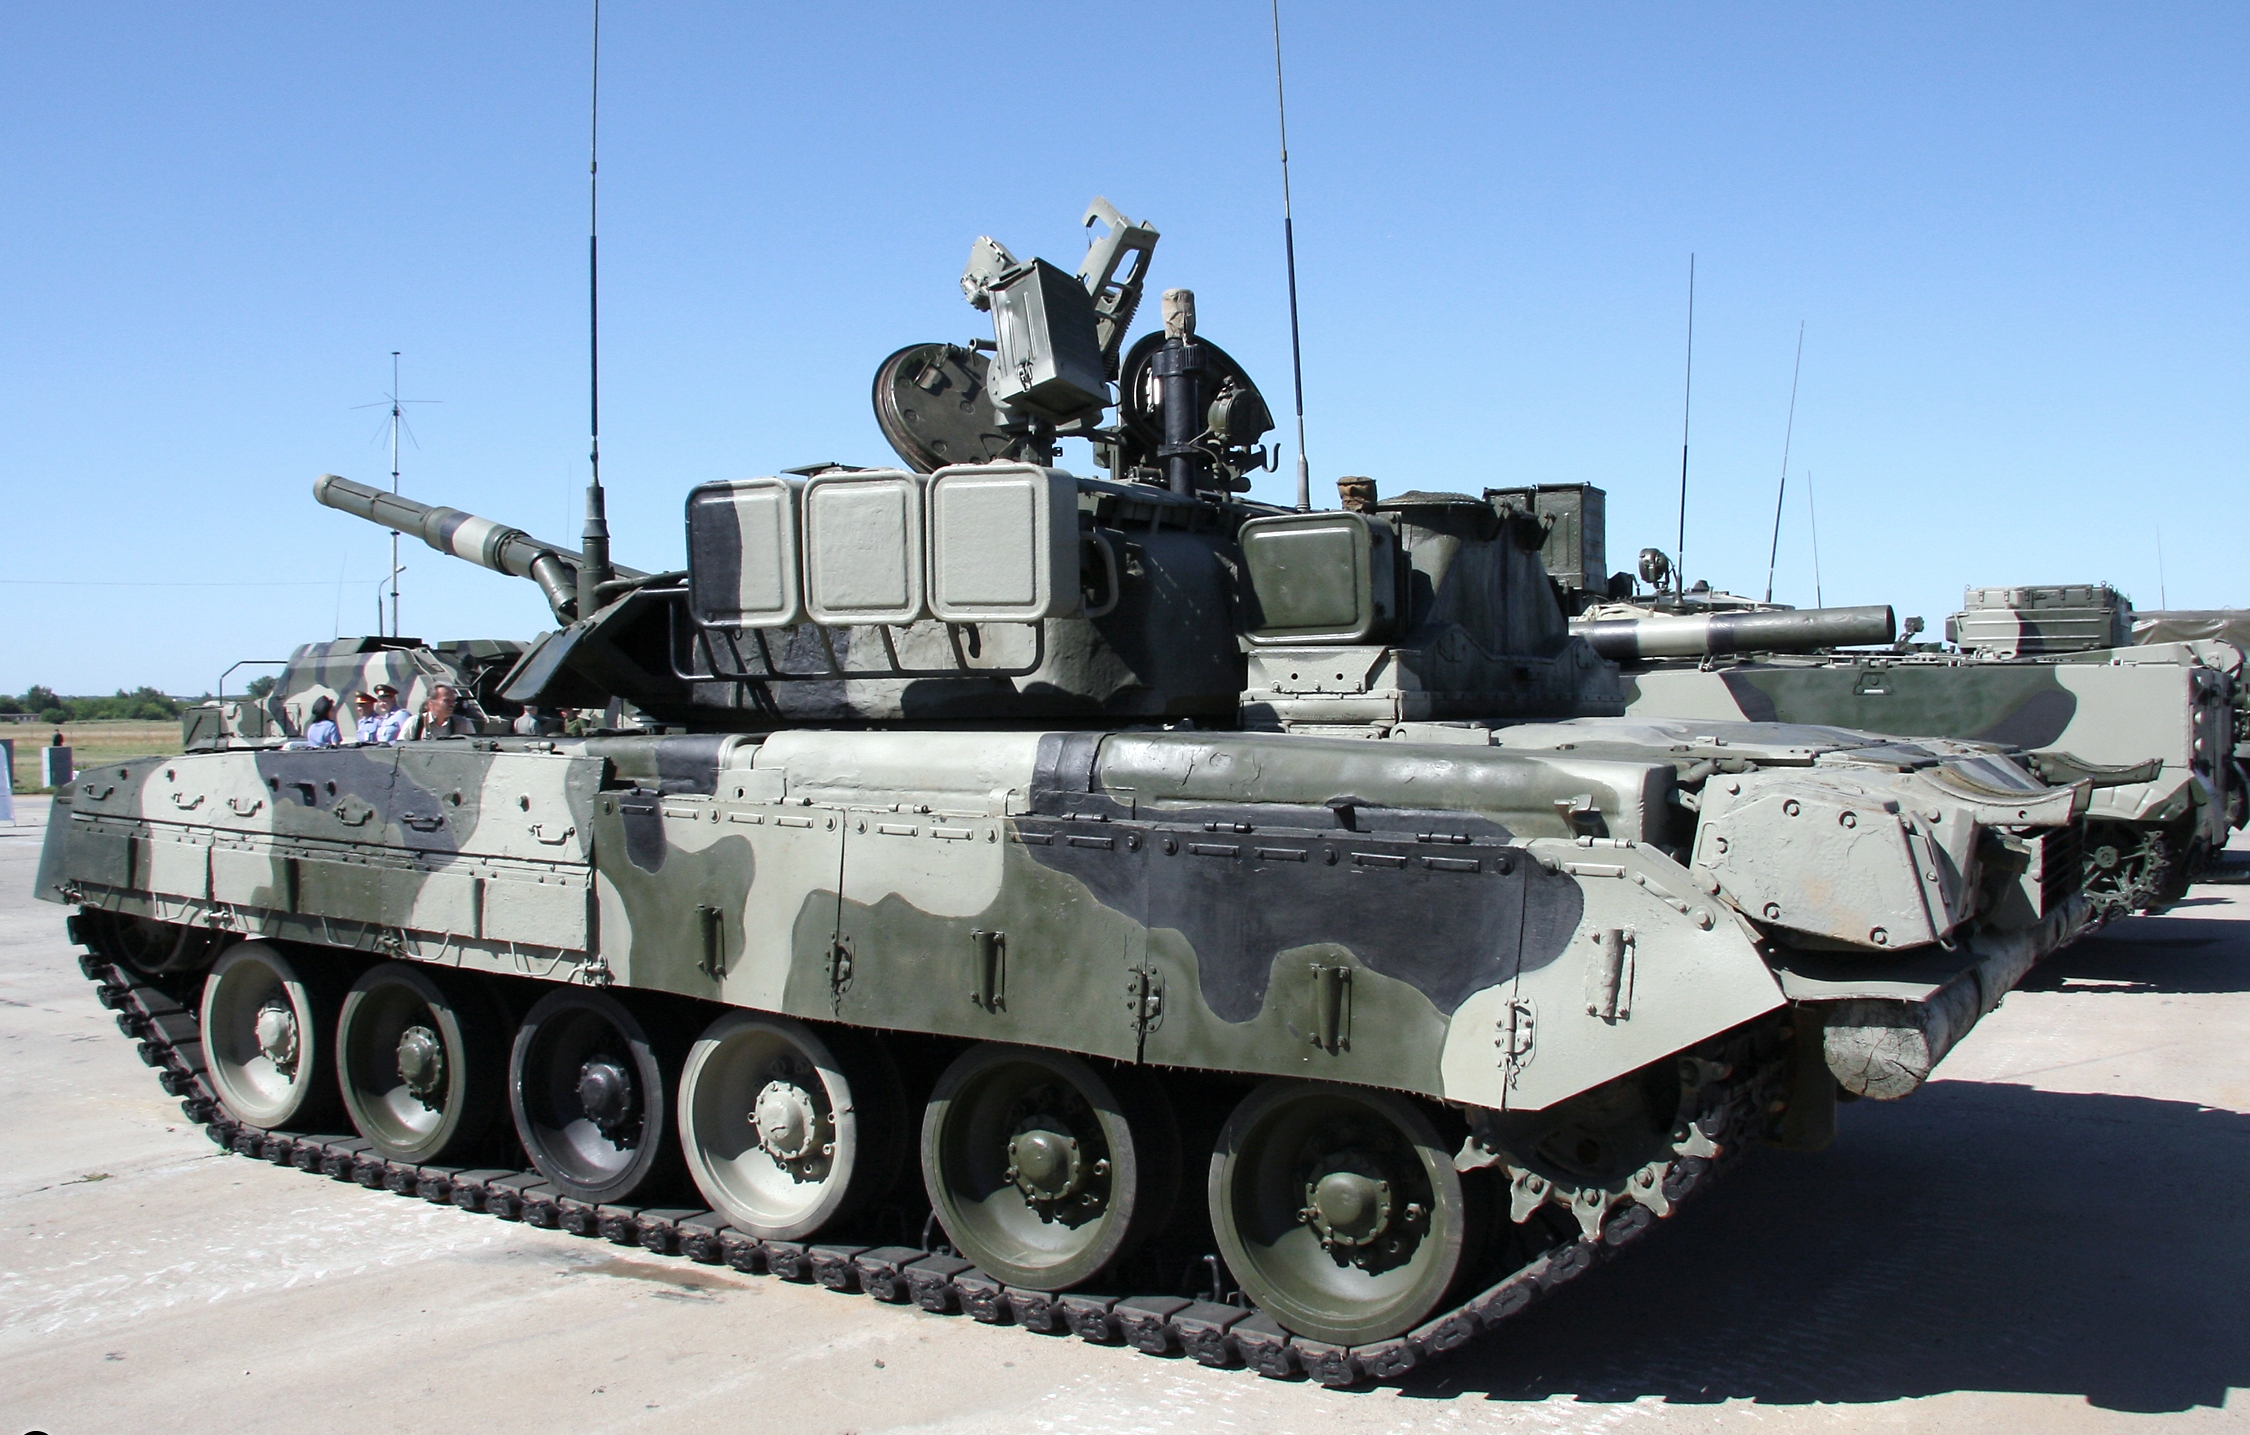 https://upload.wikimedia.org/wikipedia/commons/b/bc/T-80U_tank%2C_Engineering_Technologies_2010.jpg